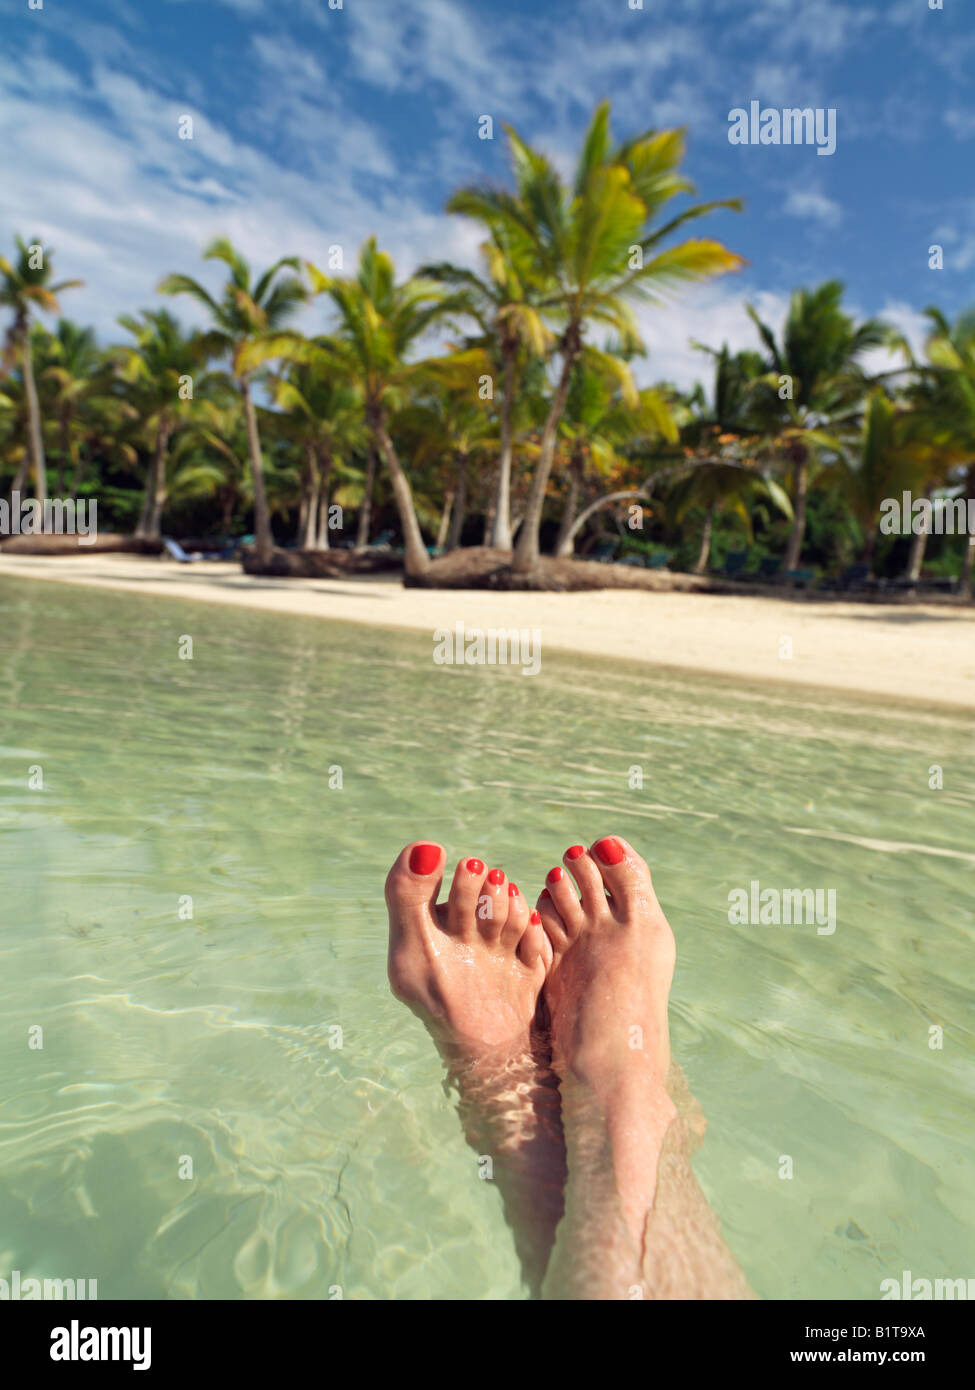 Dominican Republic Punta Cana Bavaro Beach woman s feet floating in water against a palm fringed beach Stock Photo